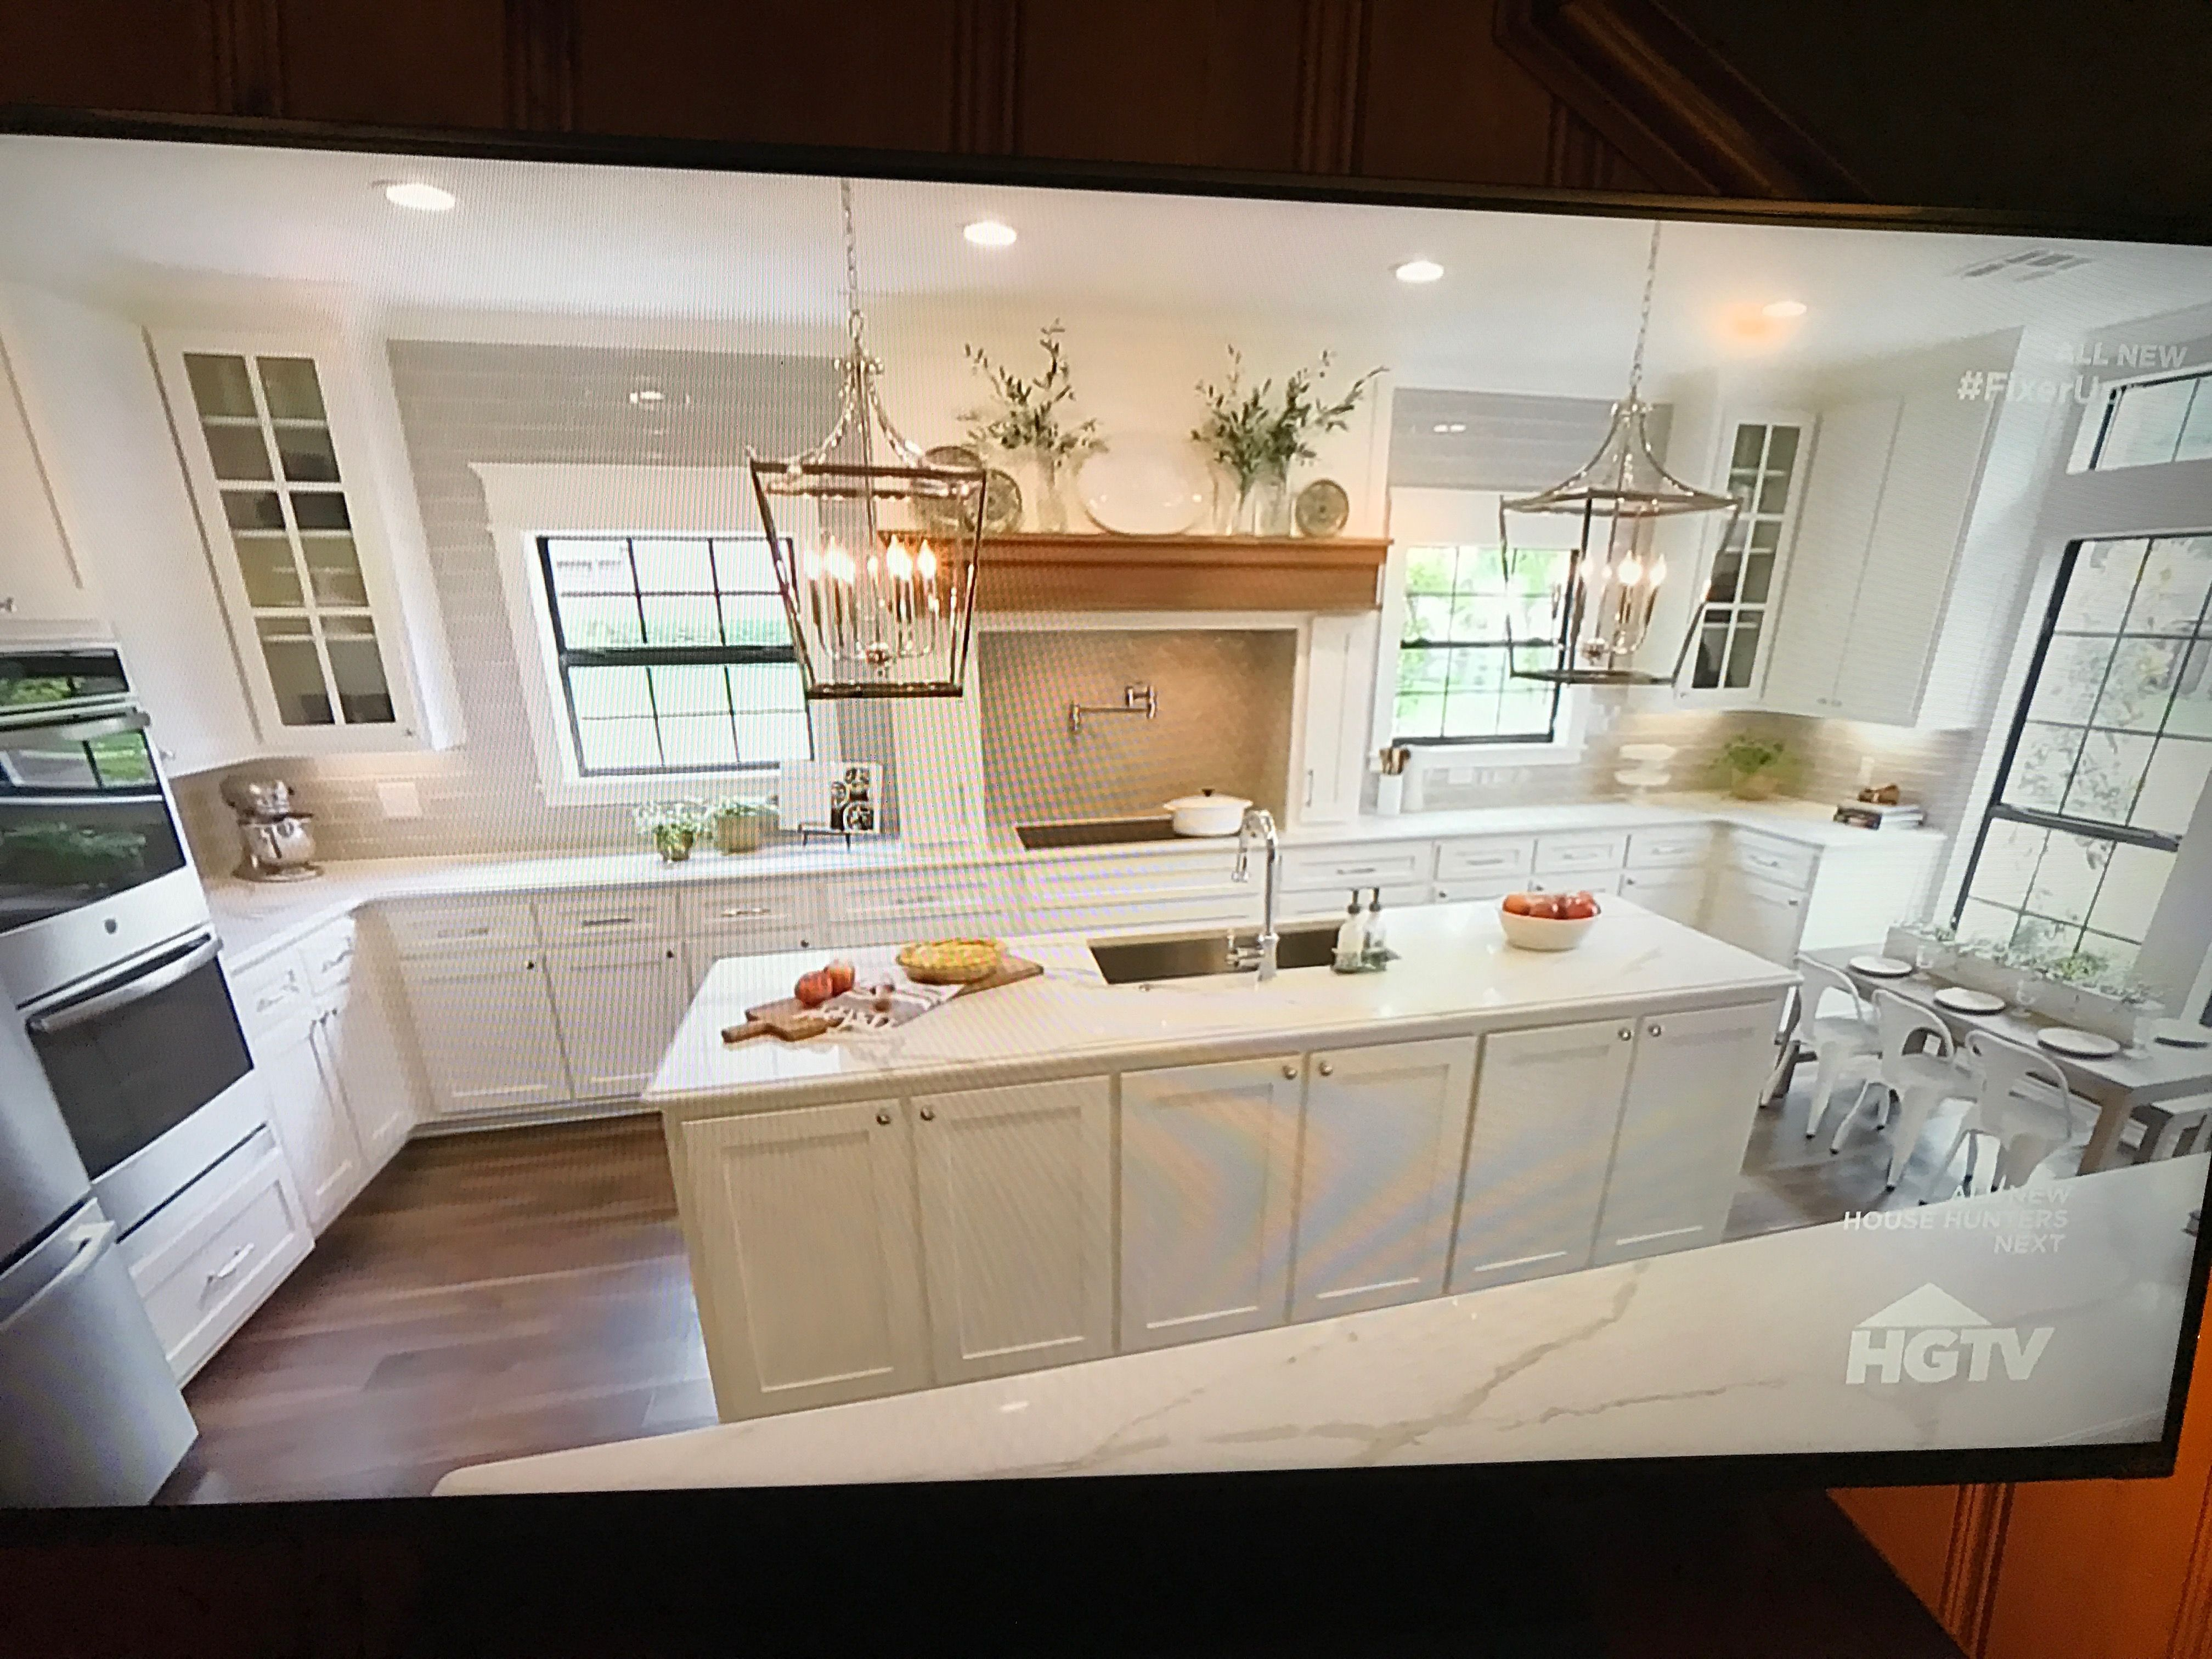 Fixer upper kitchens season 4 - Fixer Upper Season 4 Stately In White Kitchen Exactly What We Want